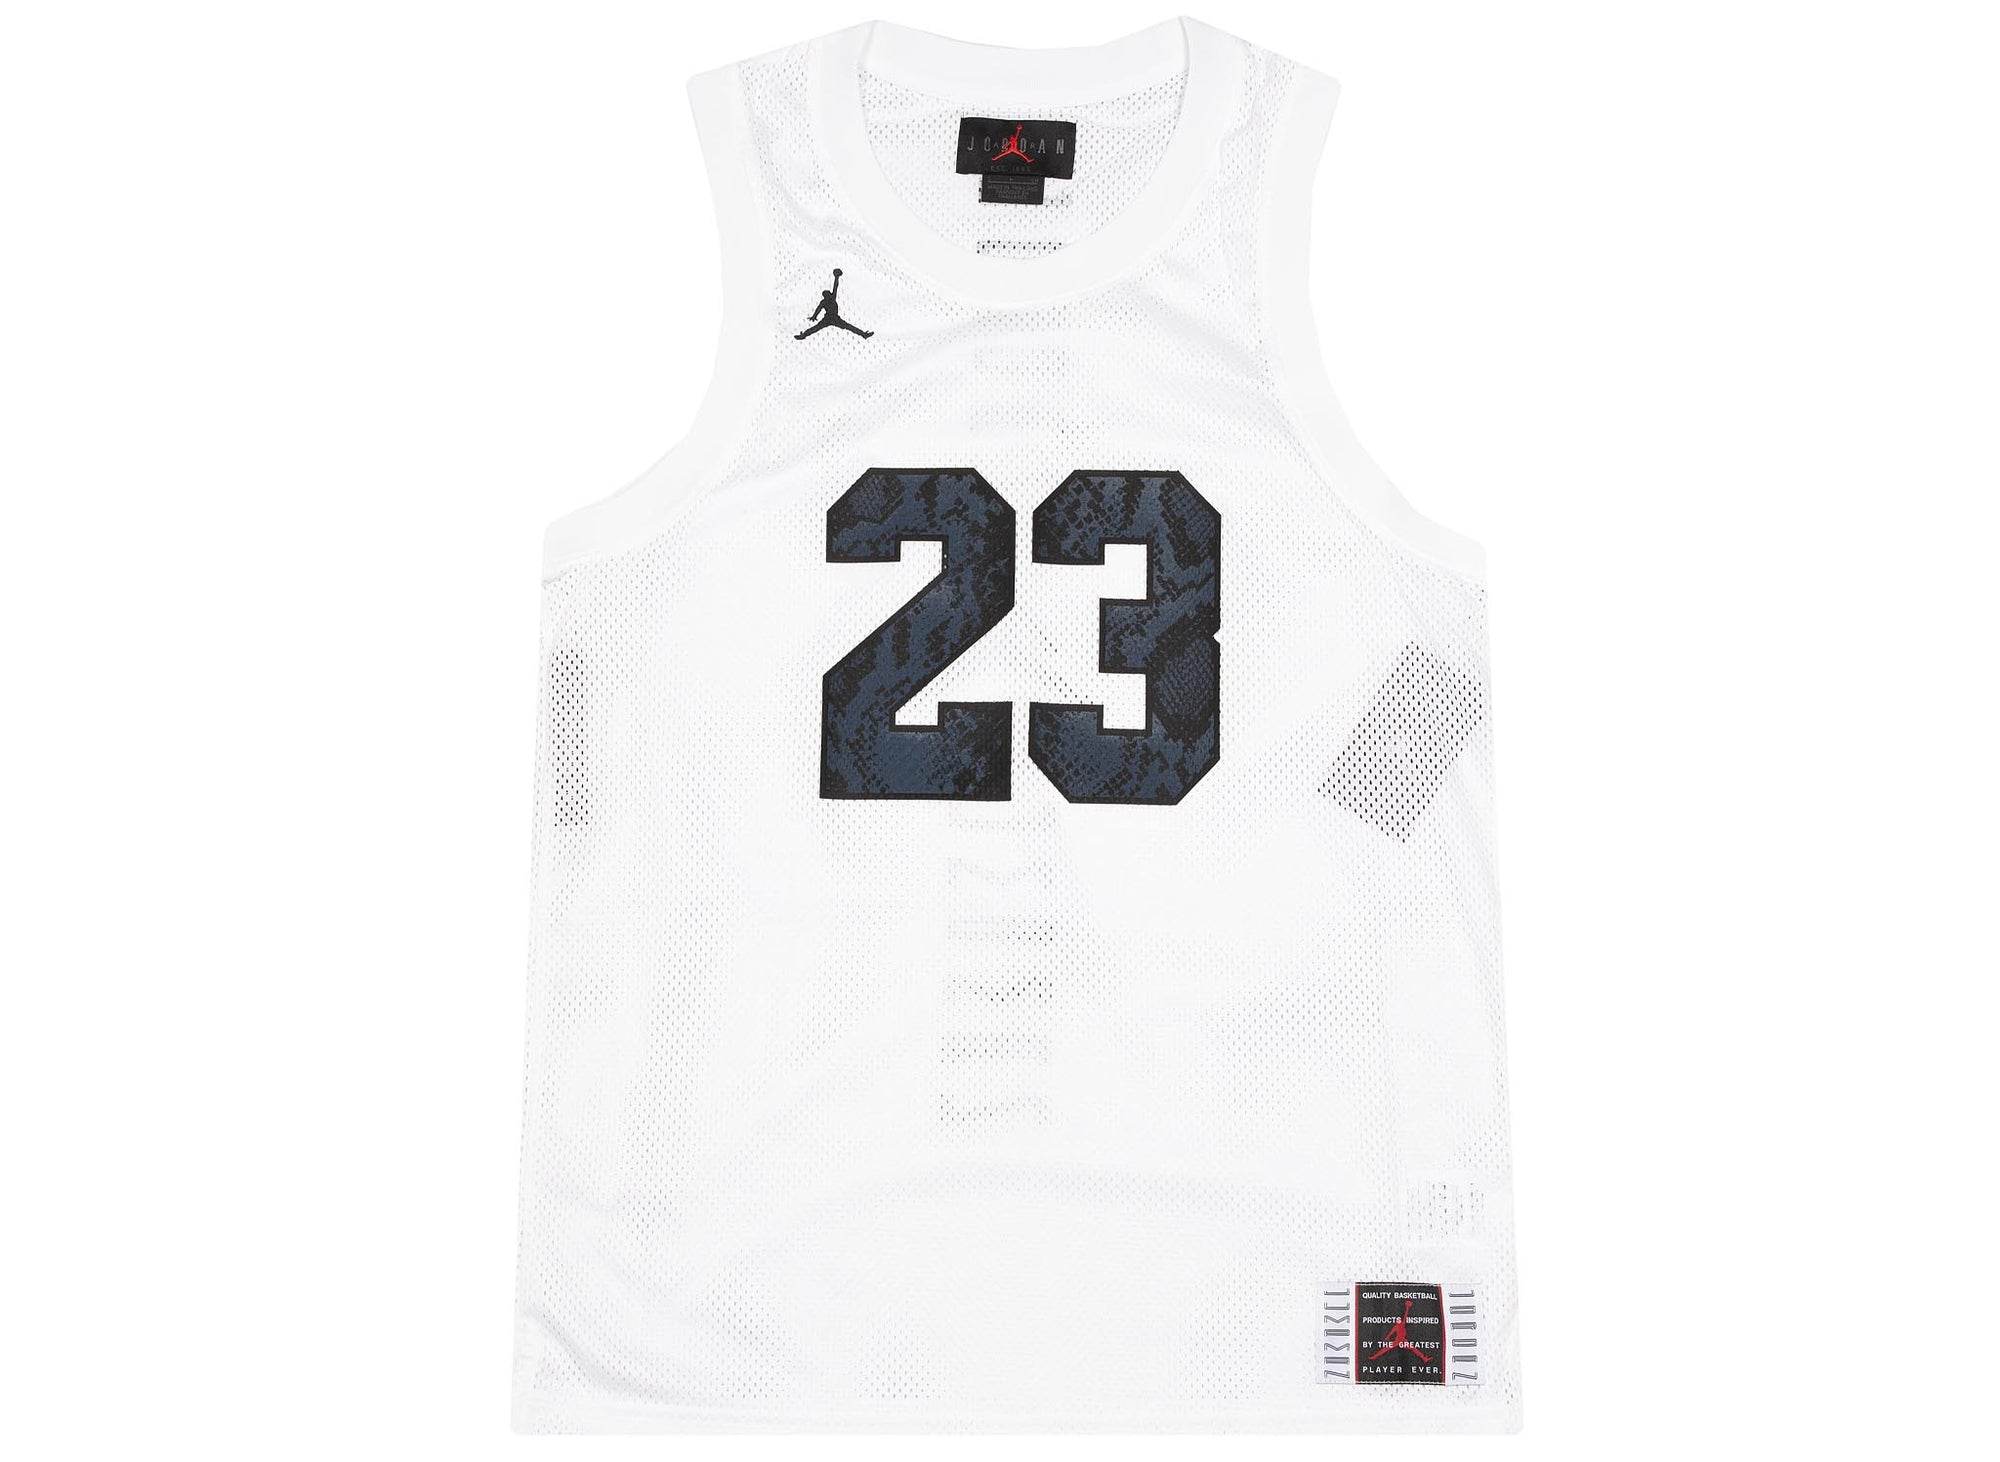 finest selection 08d0f 68f20 AIR JORDAN LEGACY AJ11 SNAKESKIN JERSEY - Oneness Boutique